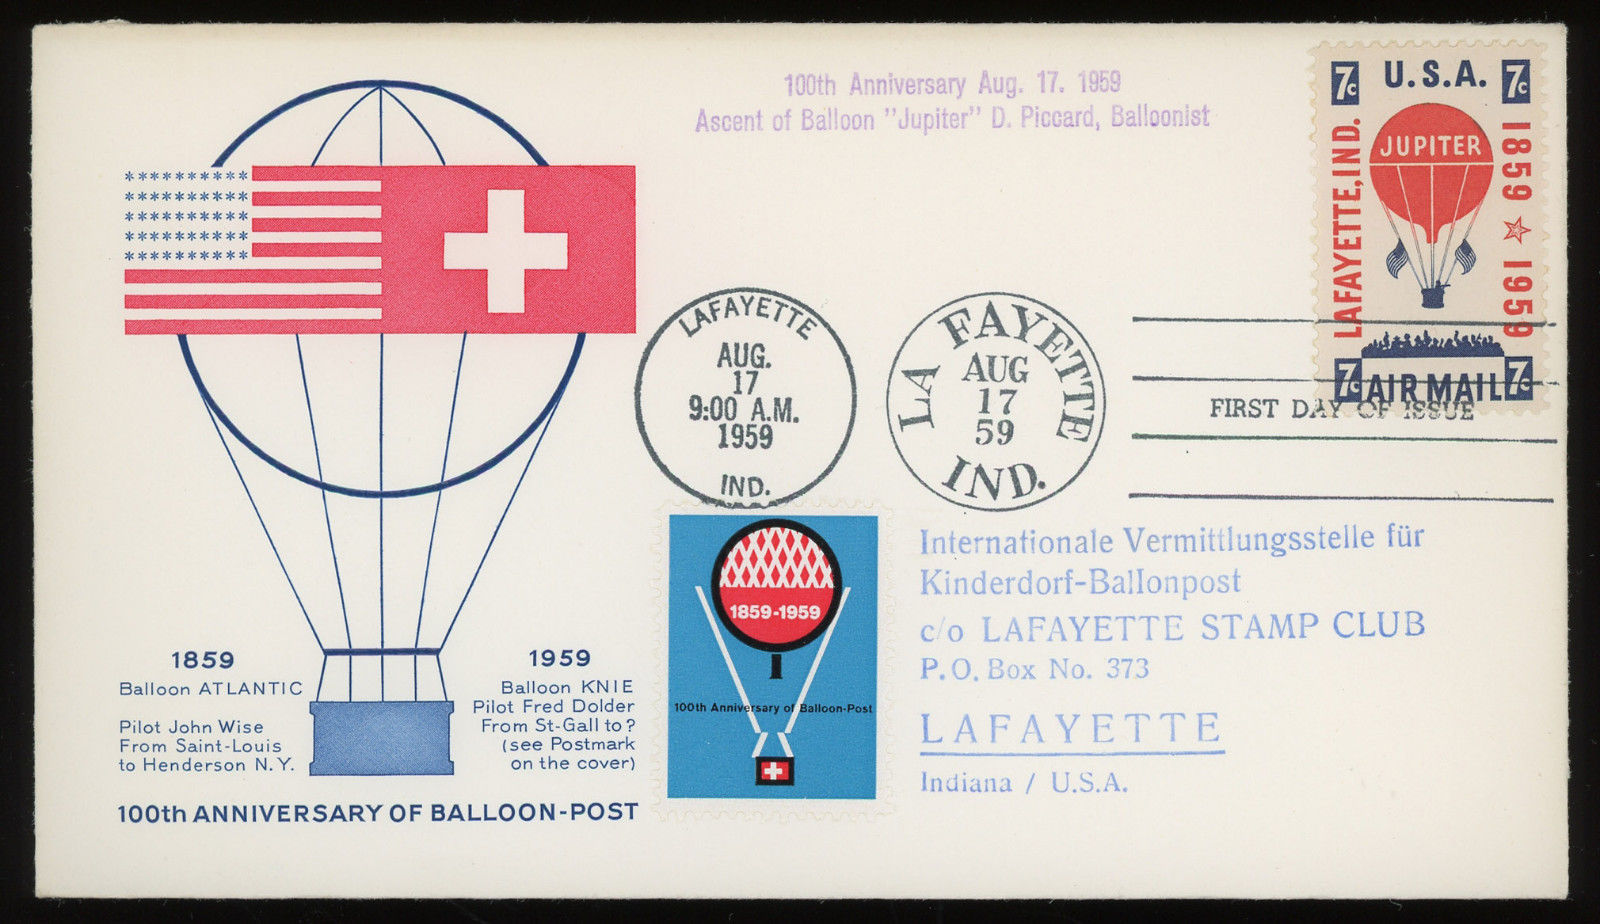 United States - Scott #C54 (1959) first day cover with cachet indicated it was aboard a balloon flight piloted by Donald Piccard, the son of Auguste Piccard who is known for his record-breaking helium-filled balloon flights, with which he studied Earth's upper atmosphere and cosmic rays, and for his invention of the first bathyscaphe, FNRS-2, with which he made a number of unmanned dives in 1948 to explore the ocean's depths. Auguste Piccard also was the first to witness views of earth from 10 miles up. Don's mother, Jeanette, the first woman to fly to the edge of space. Don was one of the driving forces behind the hot-air ballooning revival after the war while a student at the University of Minnesota. He made the first post-war free flight in 1947 with a captured Japanese balloon.[2] In 1948, he organized the first balloon club in the United States, the Balloon Club of America. This club, along with the Balloon Flyers of Akron, formed the Balloon Federation of America, today the national organization for ballooning. In 1962, Don Piccard set a new altitude record for a second-class free flight balloon, climbing to 17,000 feet. On April 13, 1963, he and Ed Yost were the first people to cross the English Channel in a hot air balloon. His son, Bertrand Piccard, along with Brian Jones, was the first to complete a non-stop balloon flight around the globe, in a balloon named Breitling Orbiter 3.